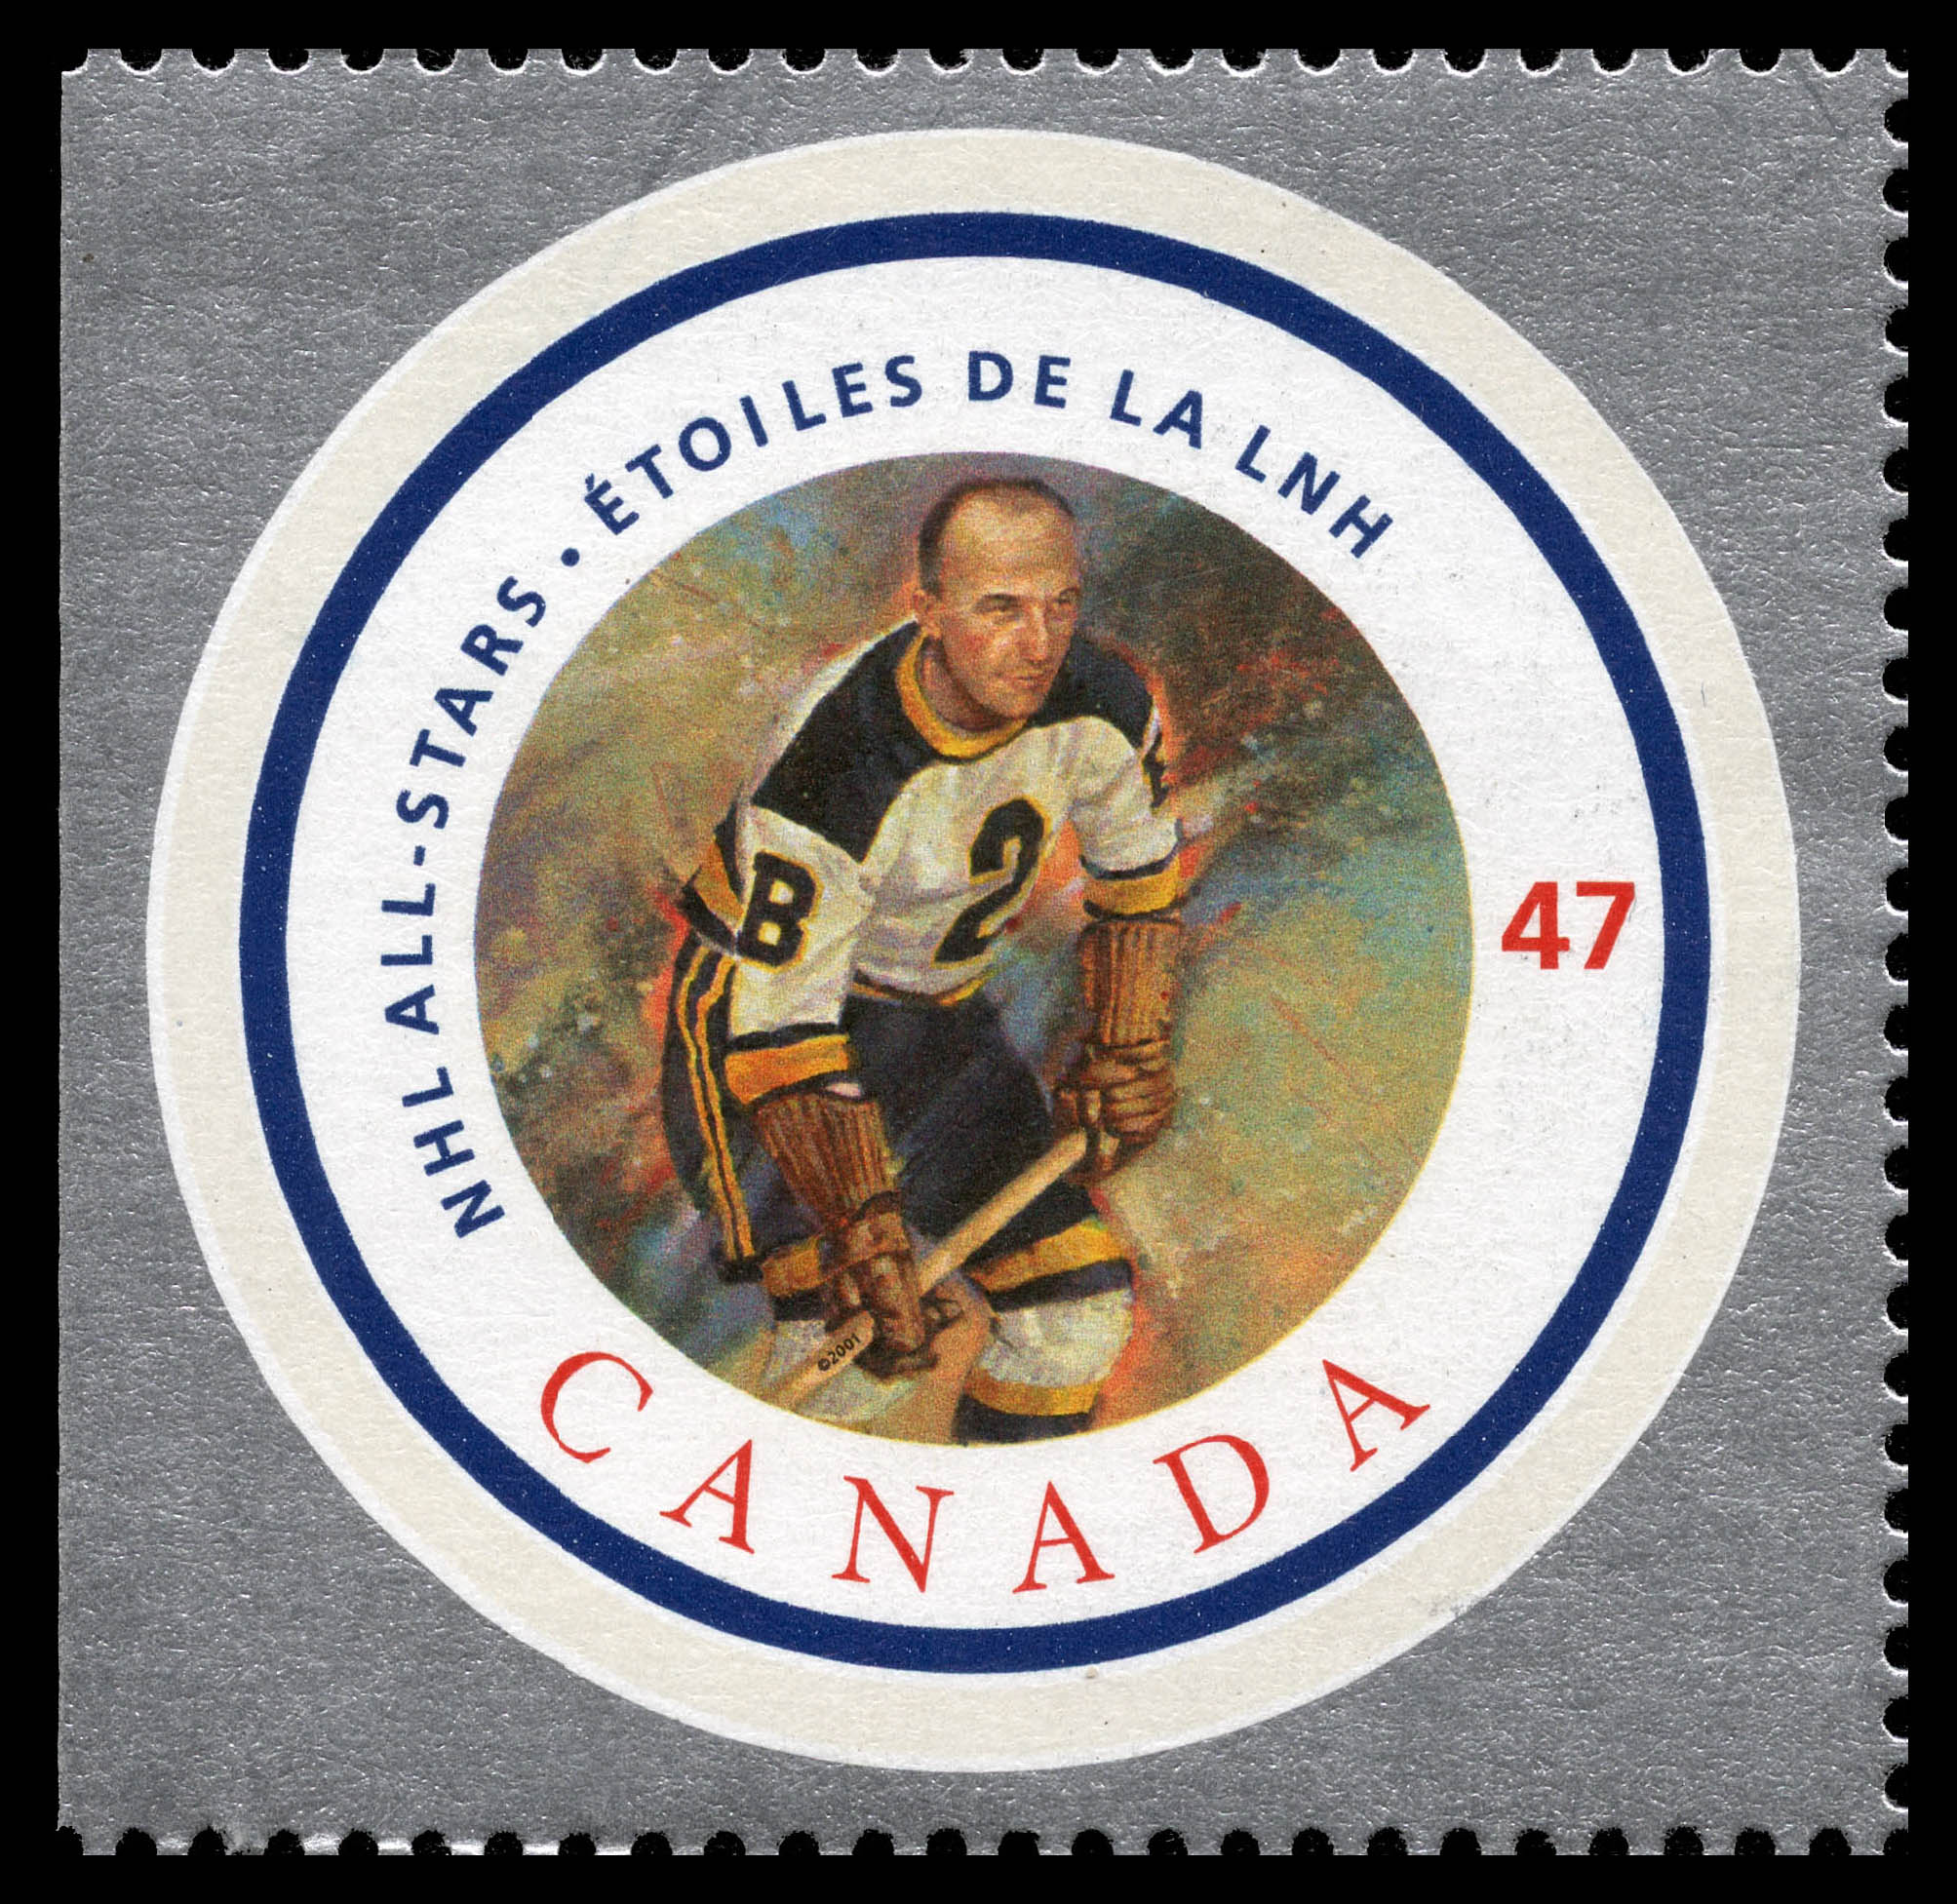 Eddie Shore Canada Postage Stamp | NHL All-Stars